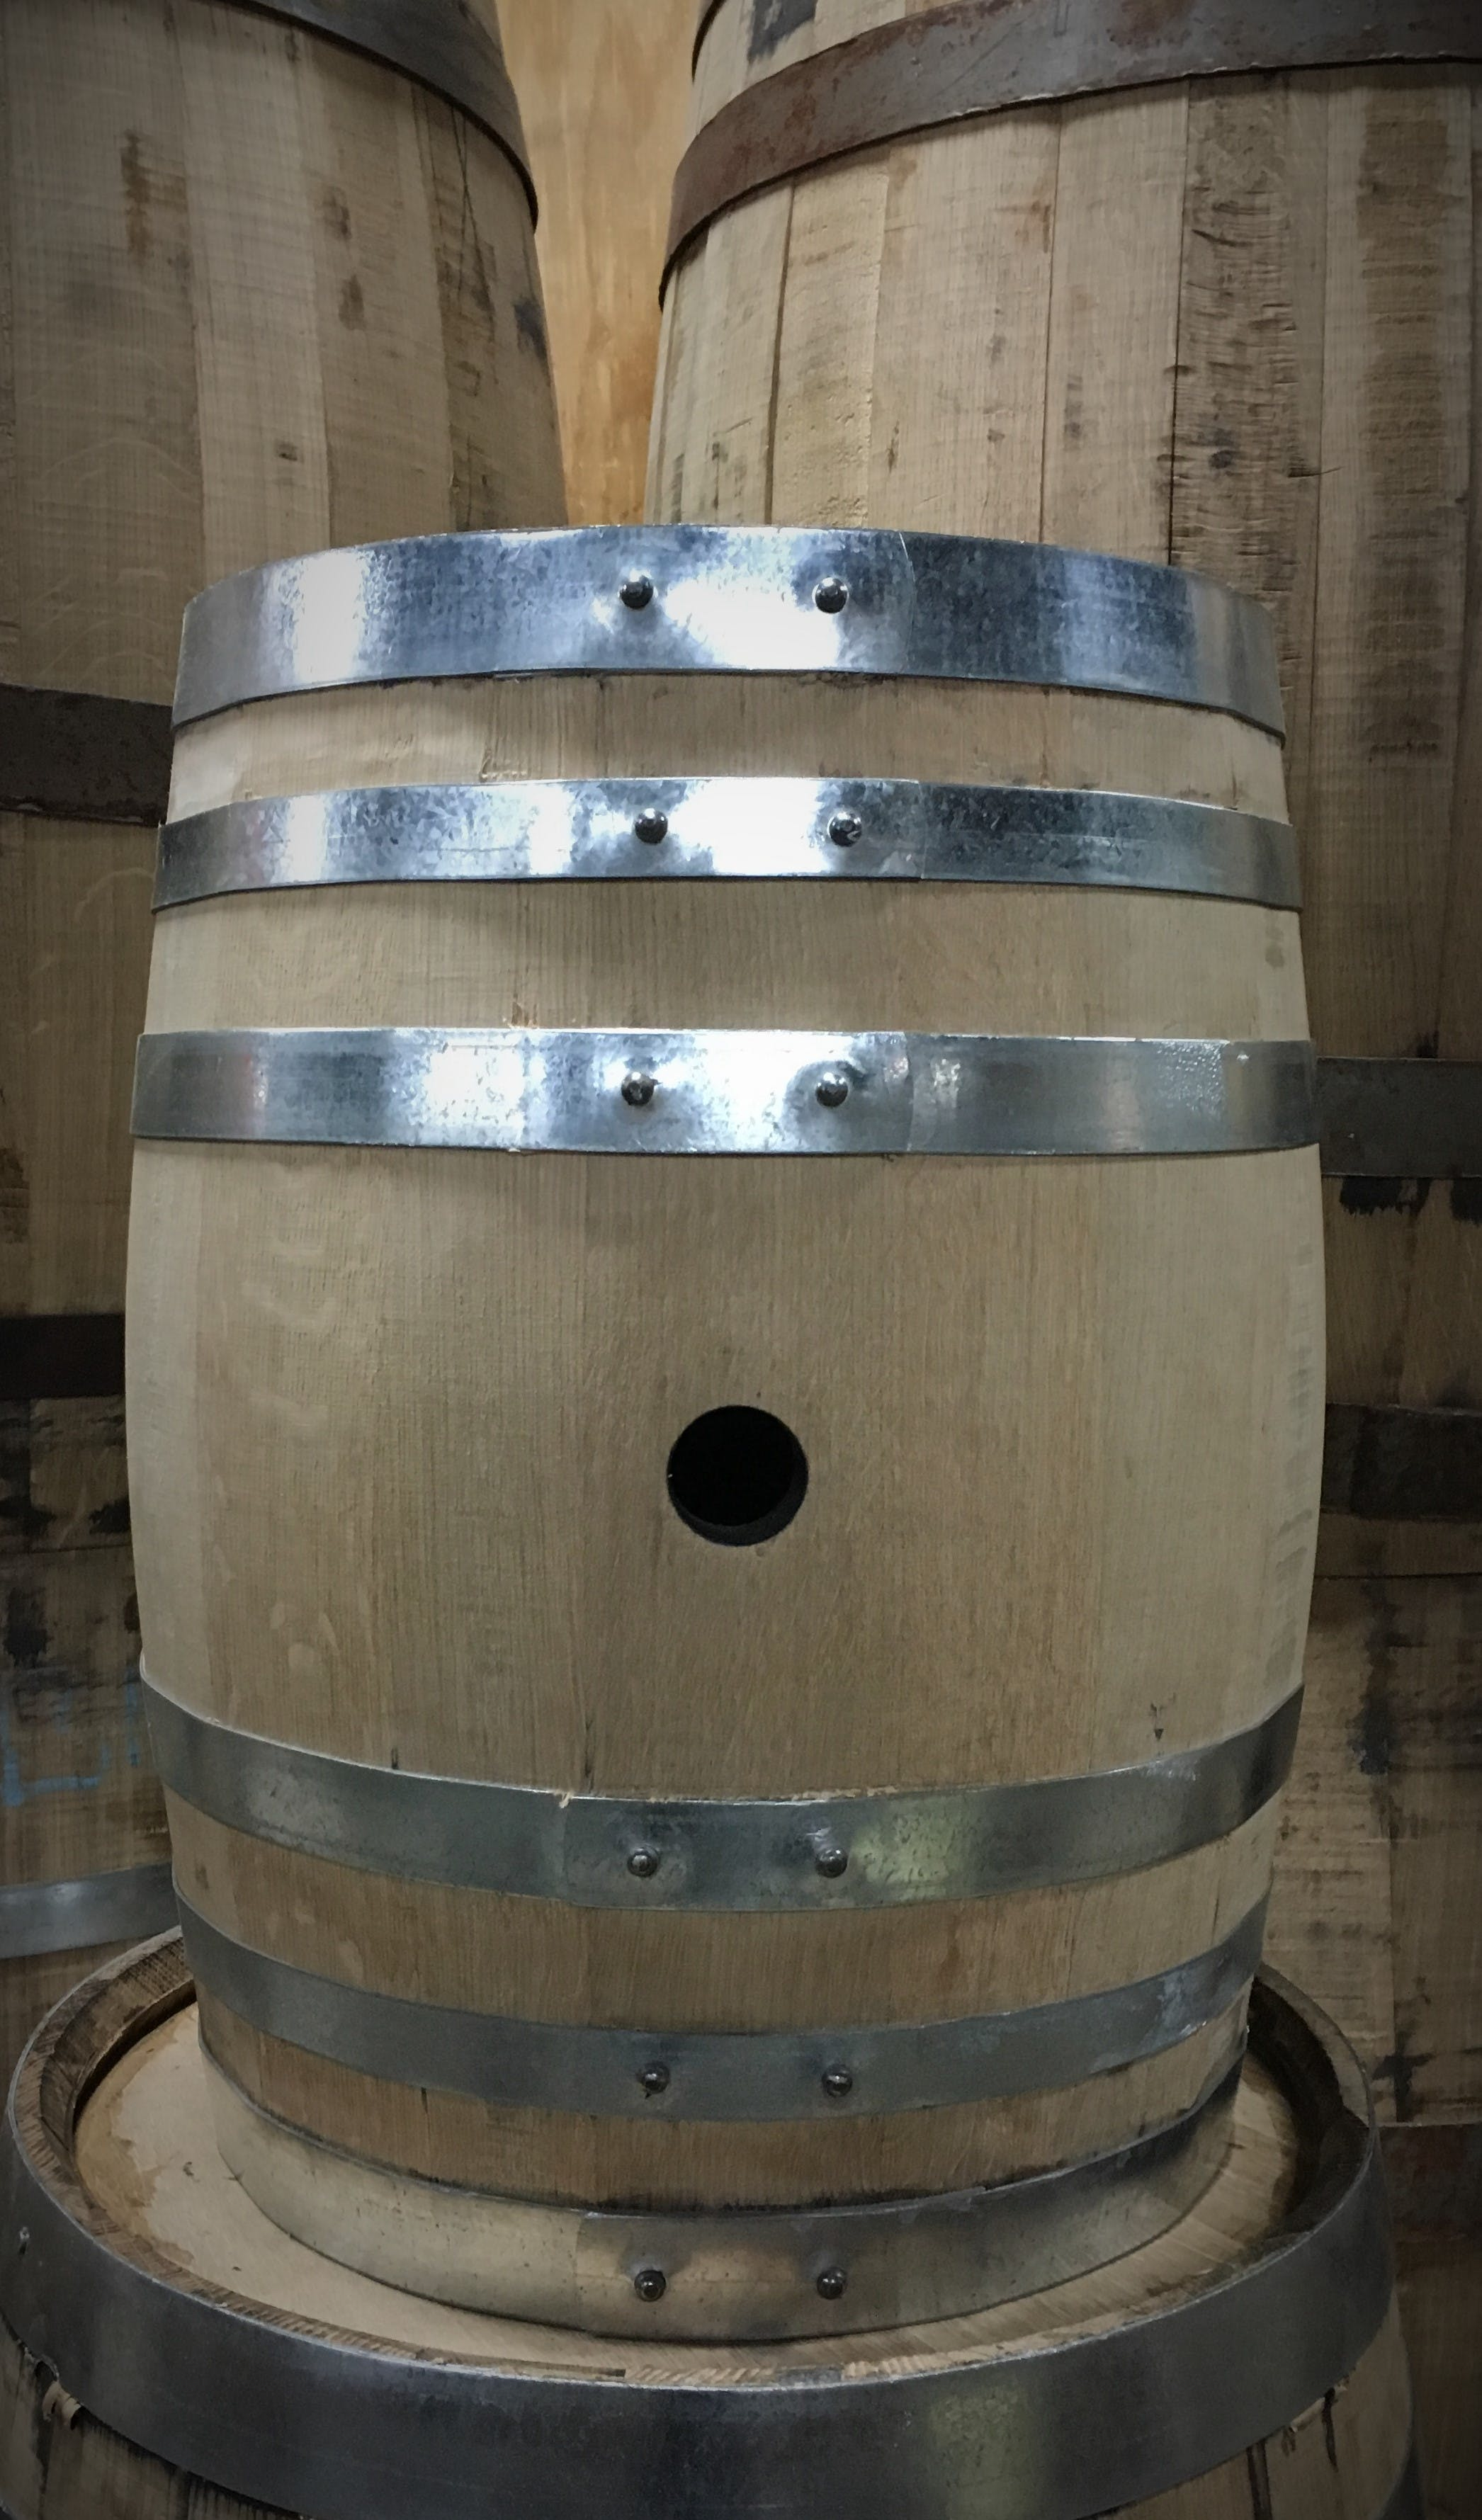 American Oak 10 Gallon Barrel (Whiskey/Spirits) Whiskey barrel sold by East Coast Wood Barrels